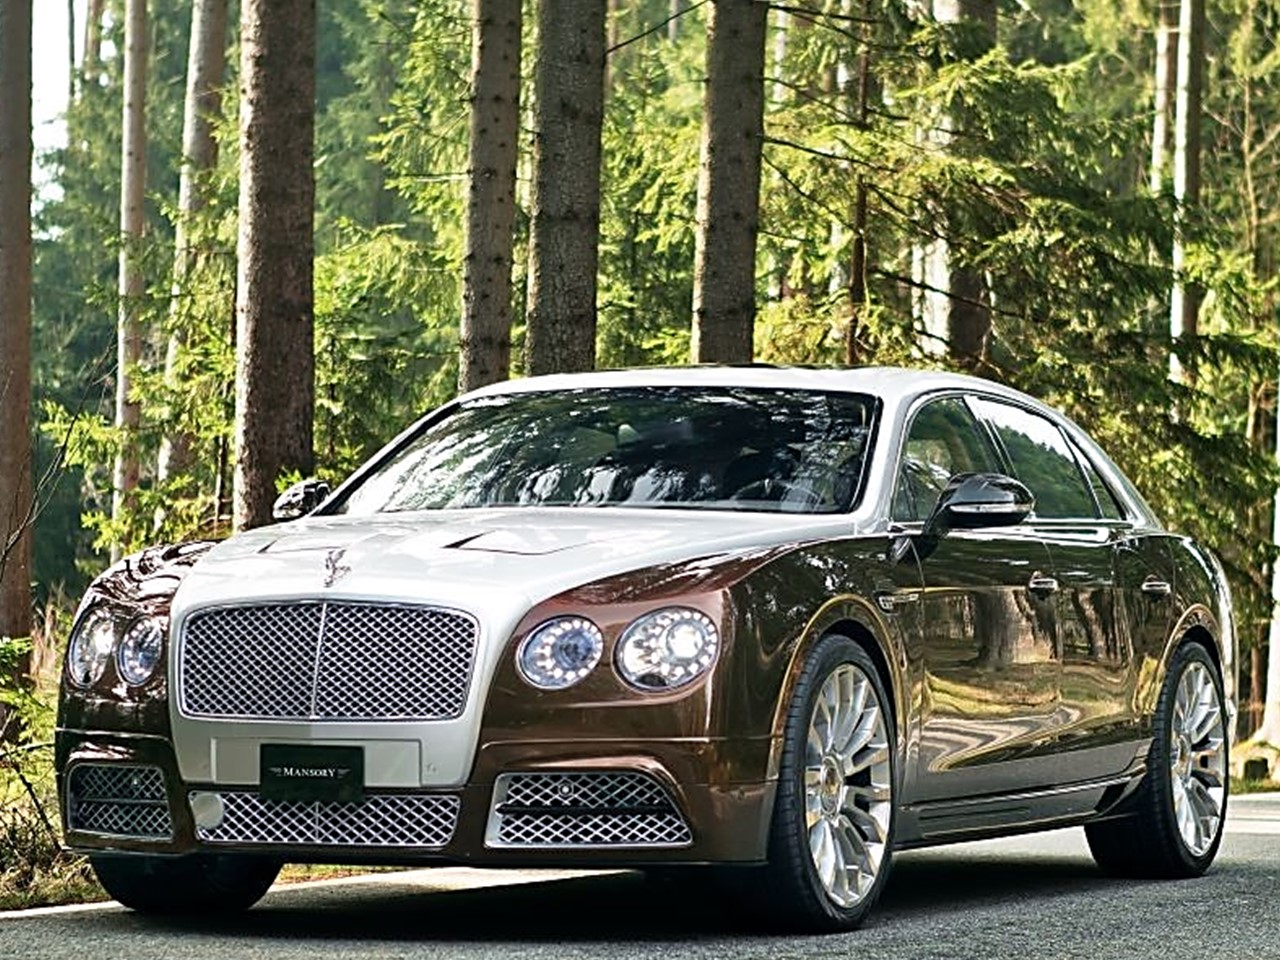 2014 Bentley Flying Spur by Mansory   NotoriousLuxury